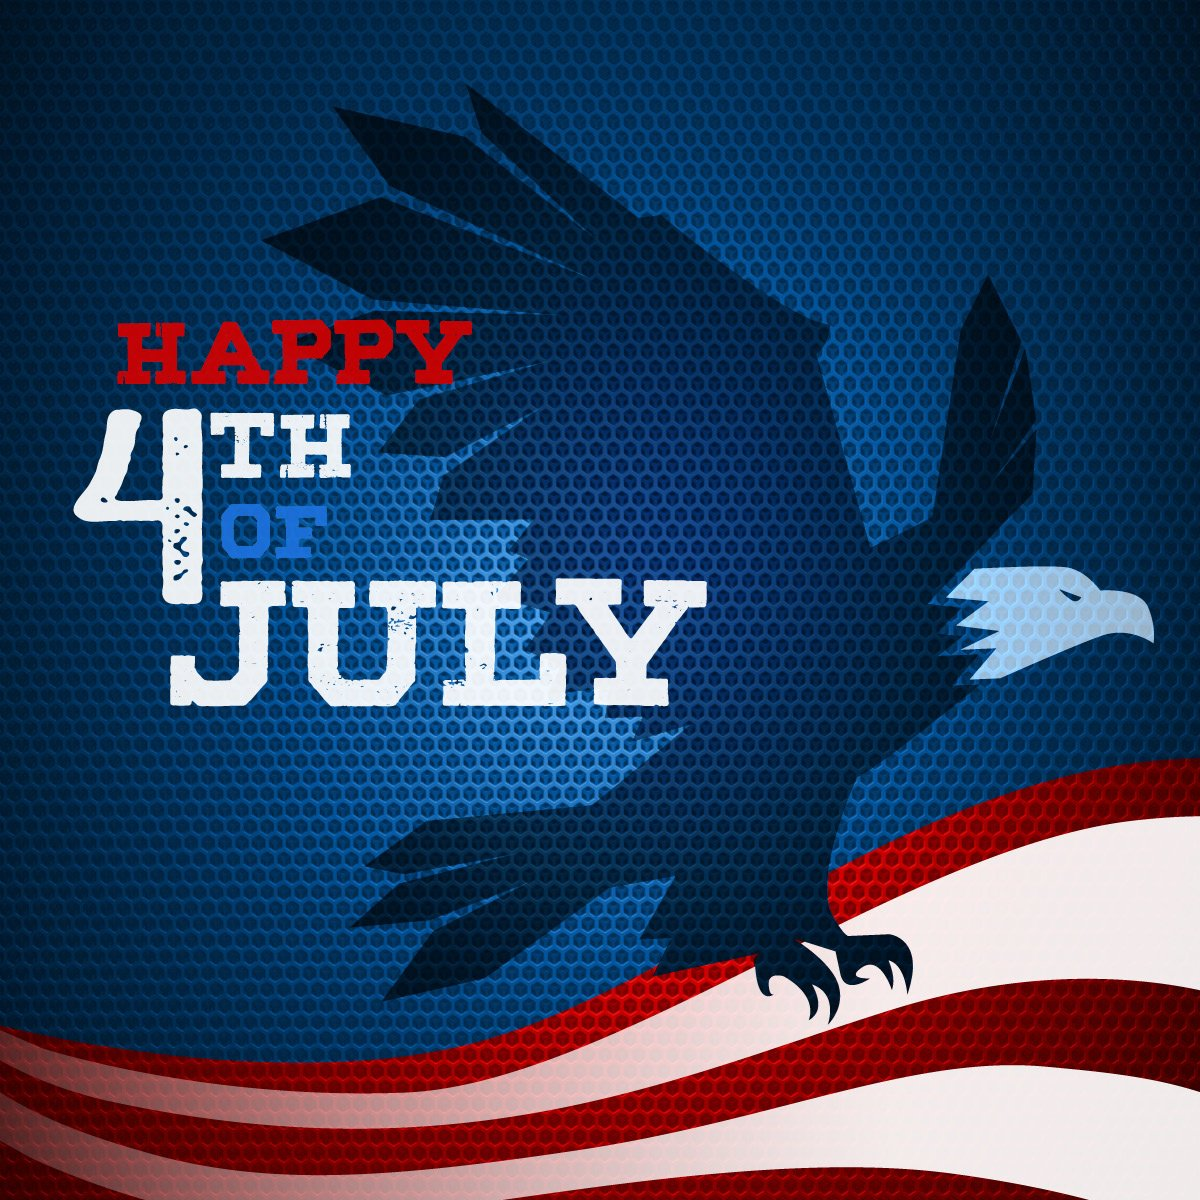 Happy 4th of July from all of us at The Focus 3 Team!